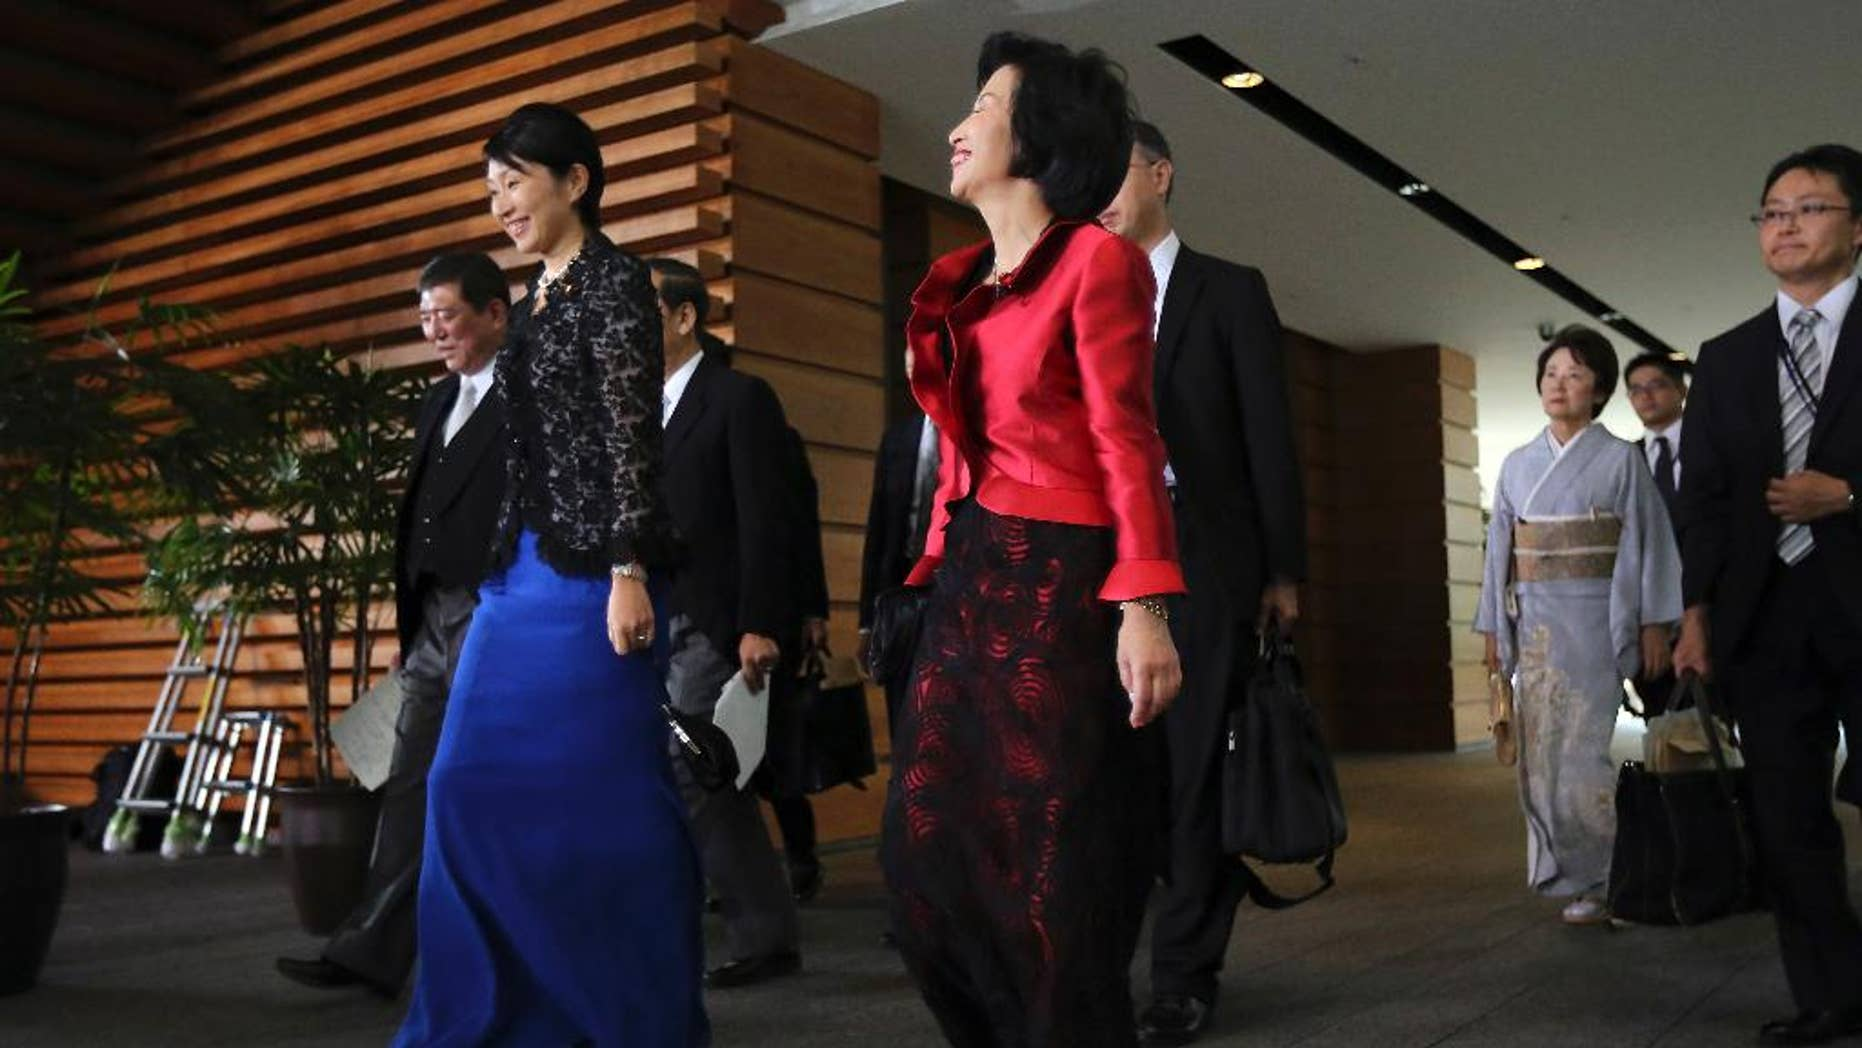 Midori Matsushima, center, newly appointed minister of Justice, Yuko Obuchi, 2nd left, newly appointed minister of Trade and Economy, and Eriko Yamatani, 3rd right, newly appointed minister in charge of abduction issue, leave for the attestation ceremony at the Imperial Palace at the prime minister's official residence in Tokyo Wednesday, Sept. 3, 2014. (AP Photo/Eugene Hoshiko)